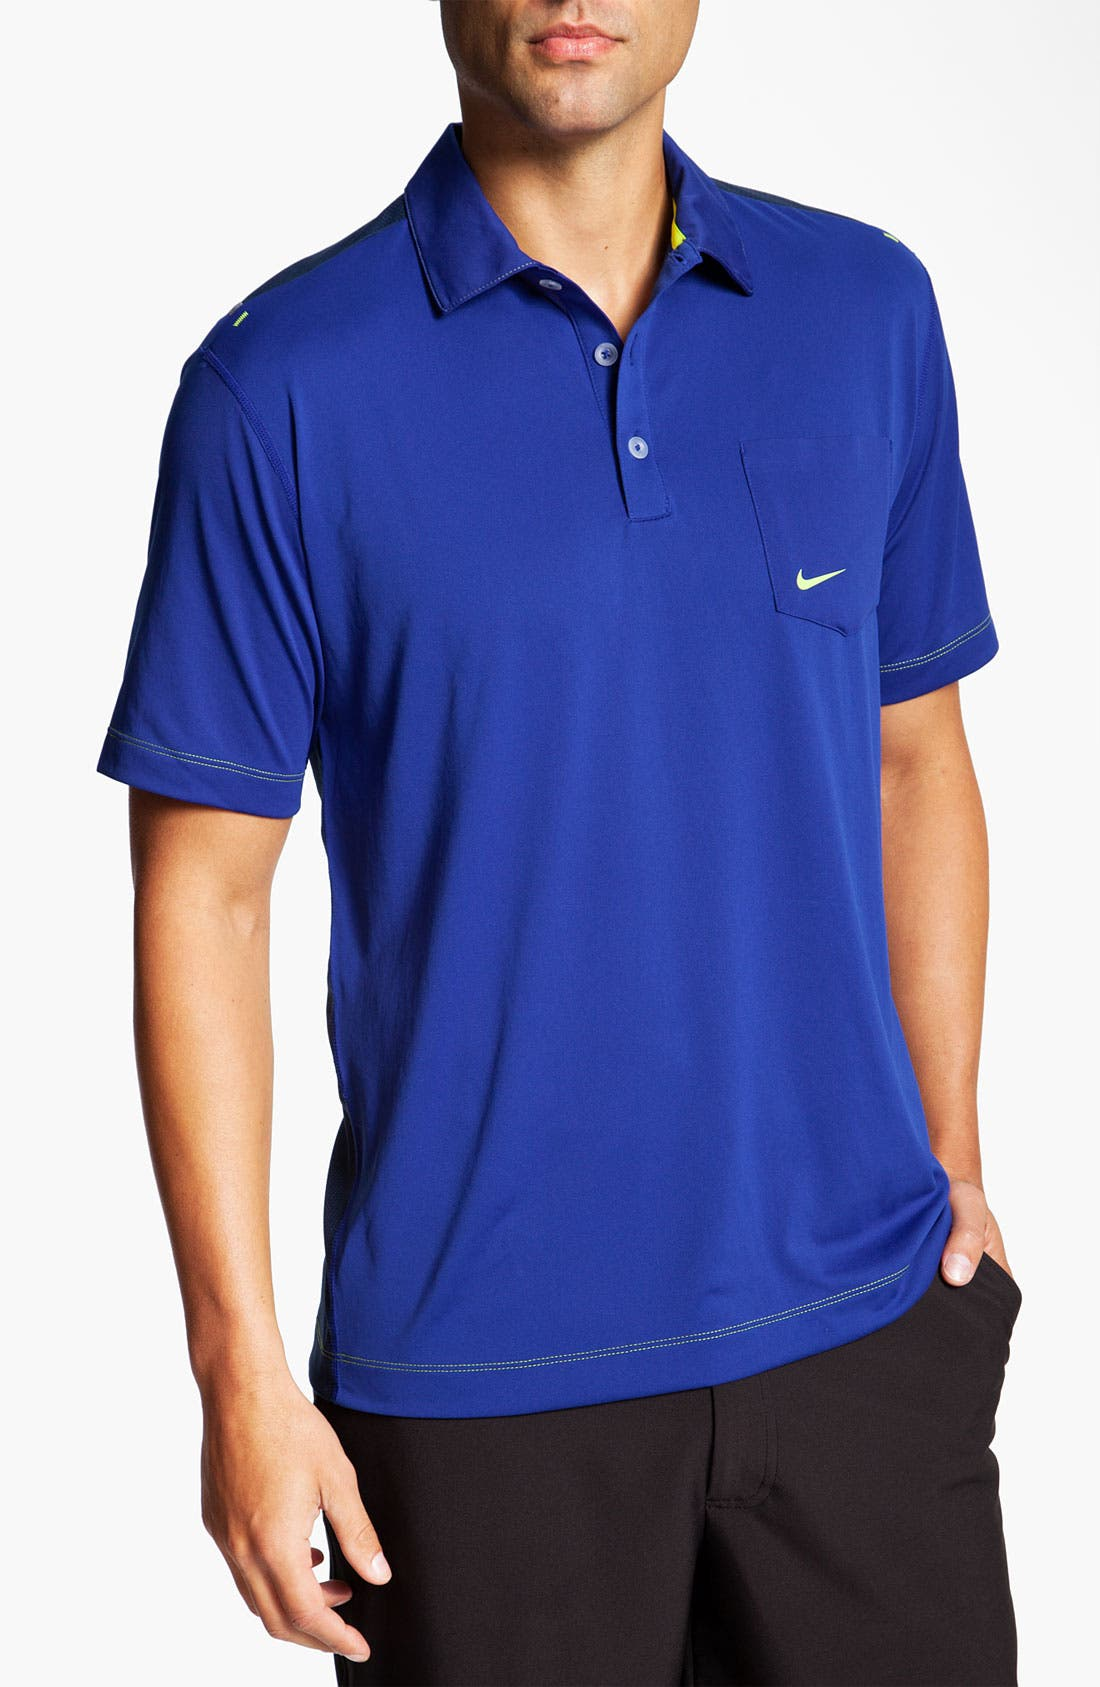 Main Image - Nike Golf 'Body Mapping' Dri-FIT Polo